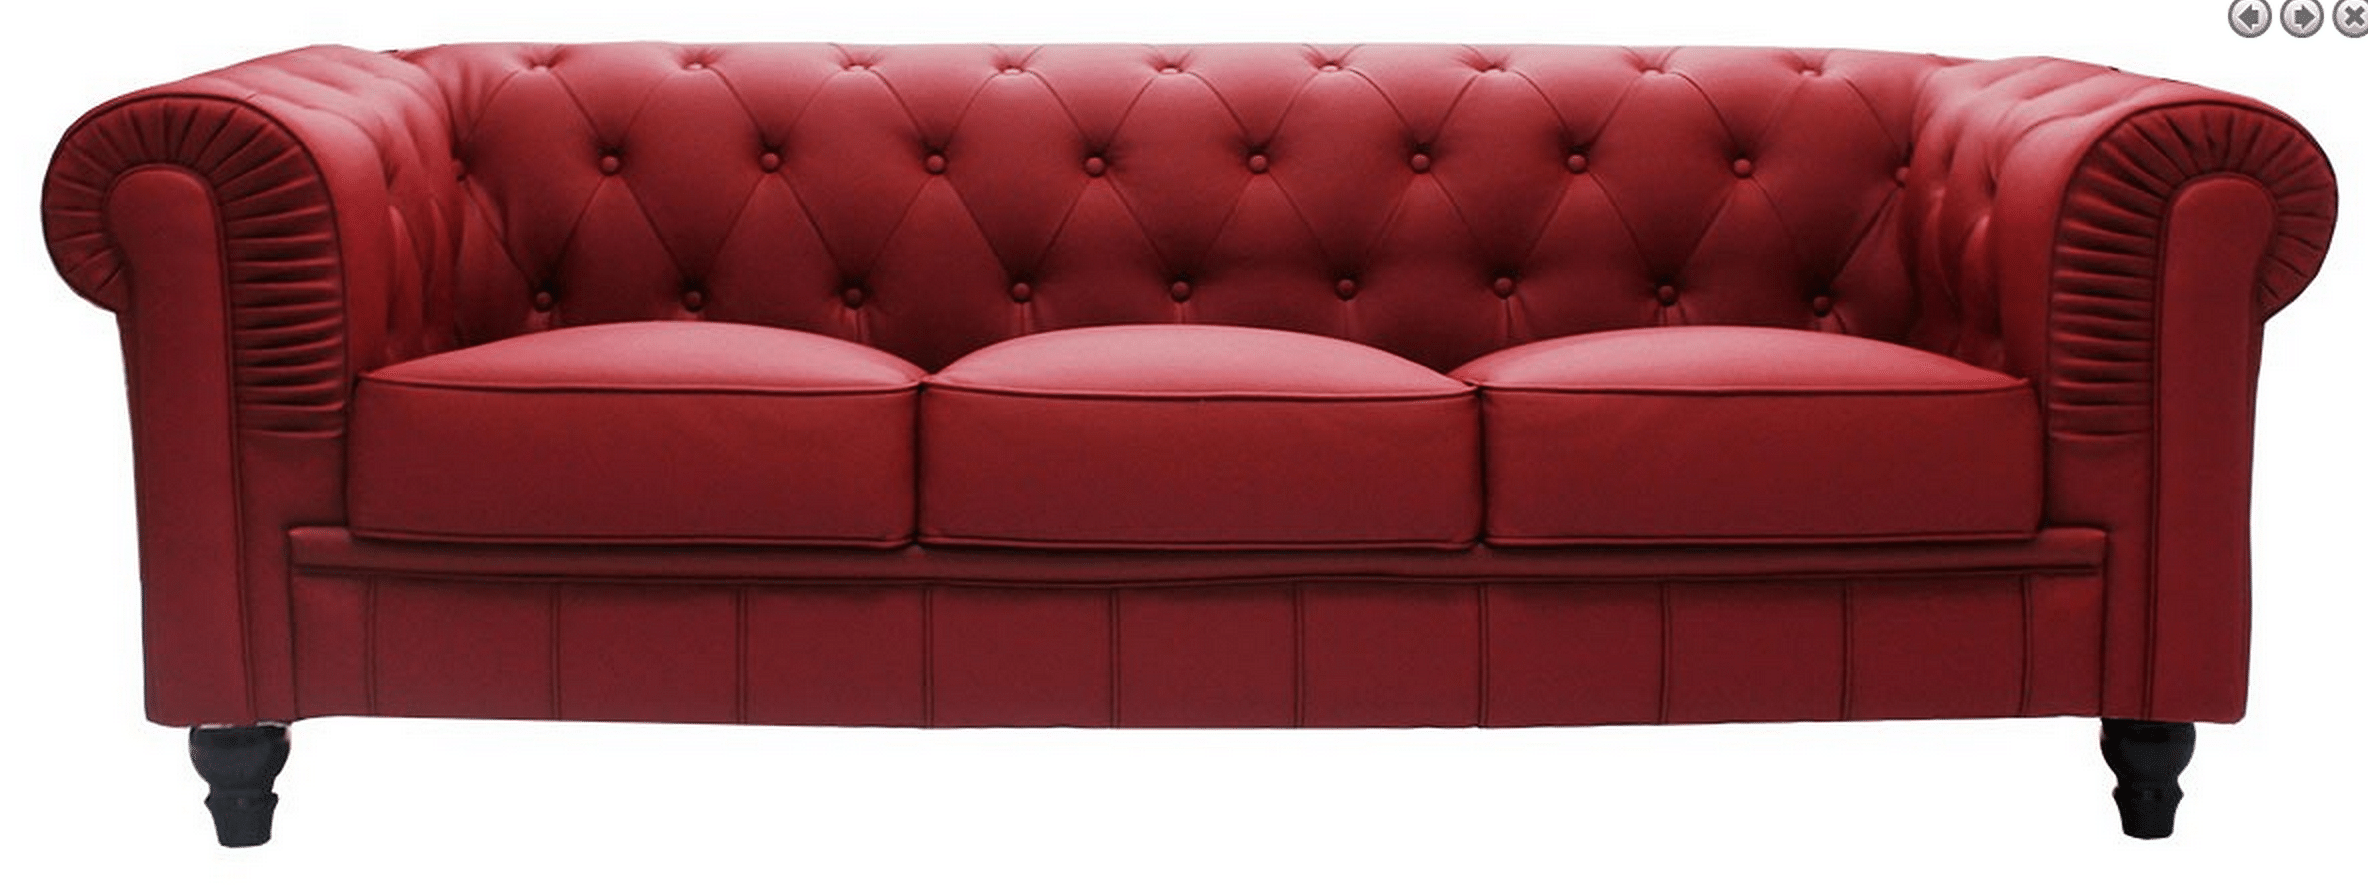 10 sofas under $1000 that you can online